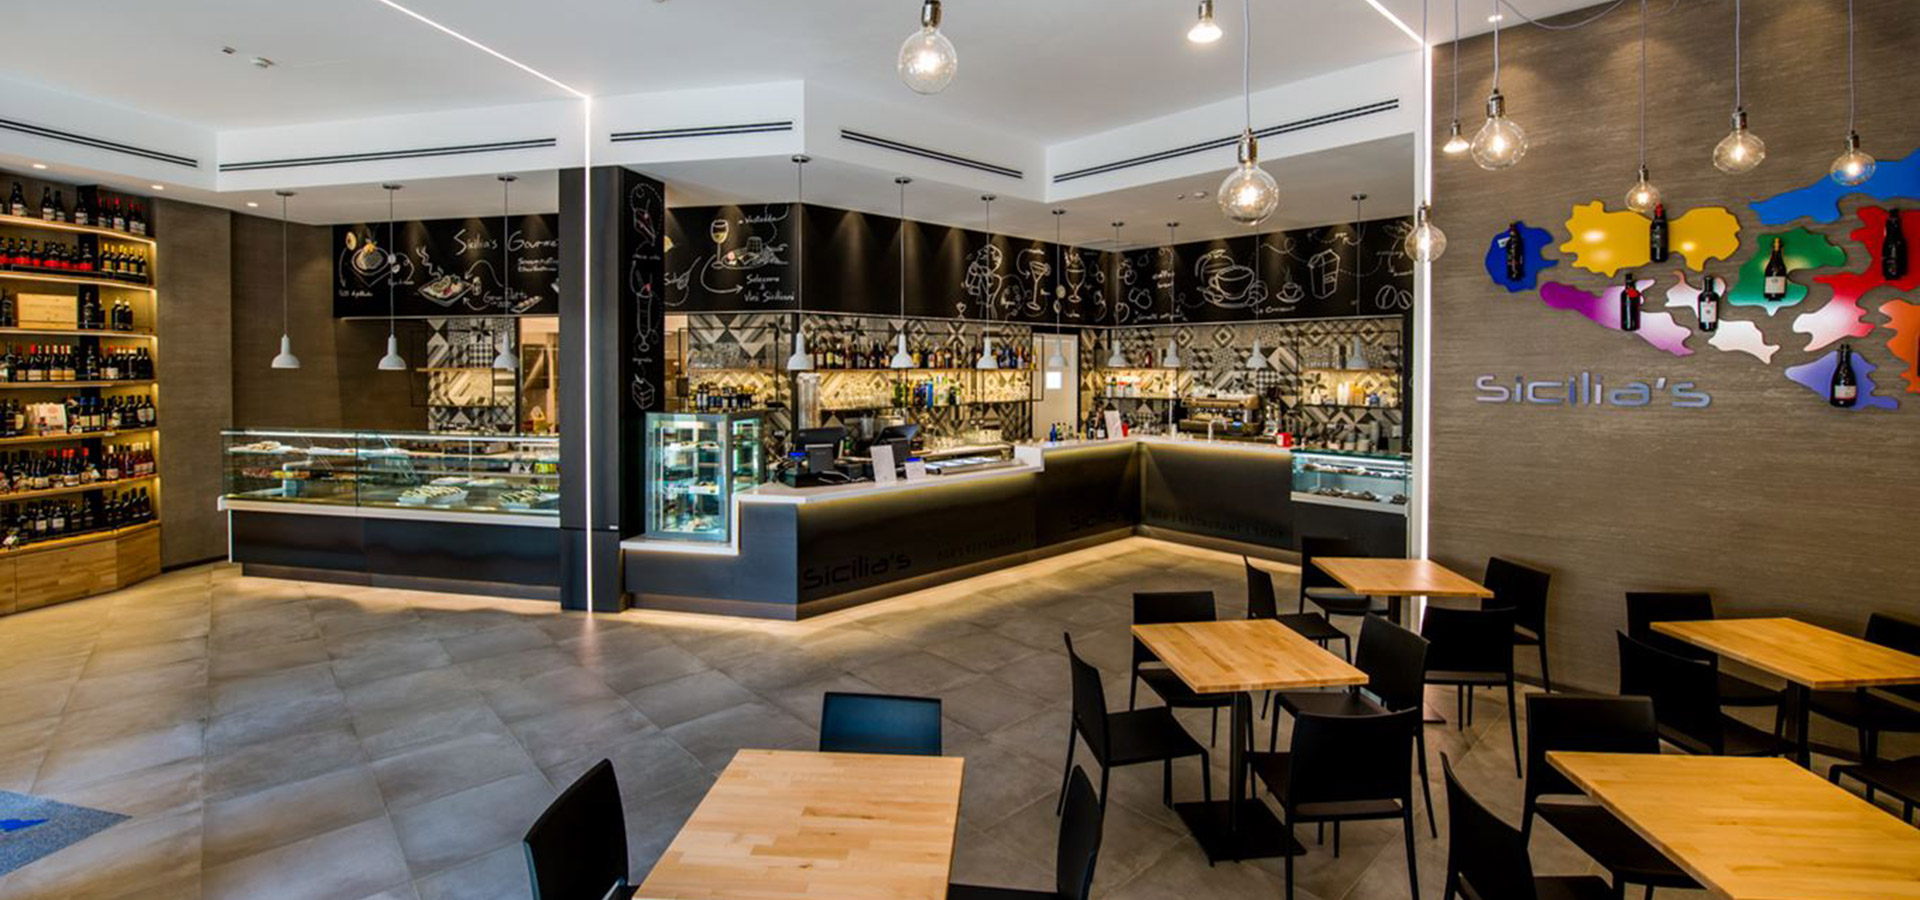 Sicilia 39 s bar restaurant shop aeroporto outlet village milano for Negozi di arredamento catania